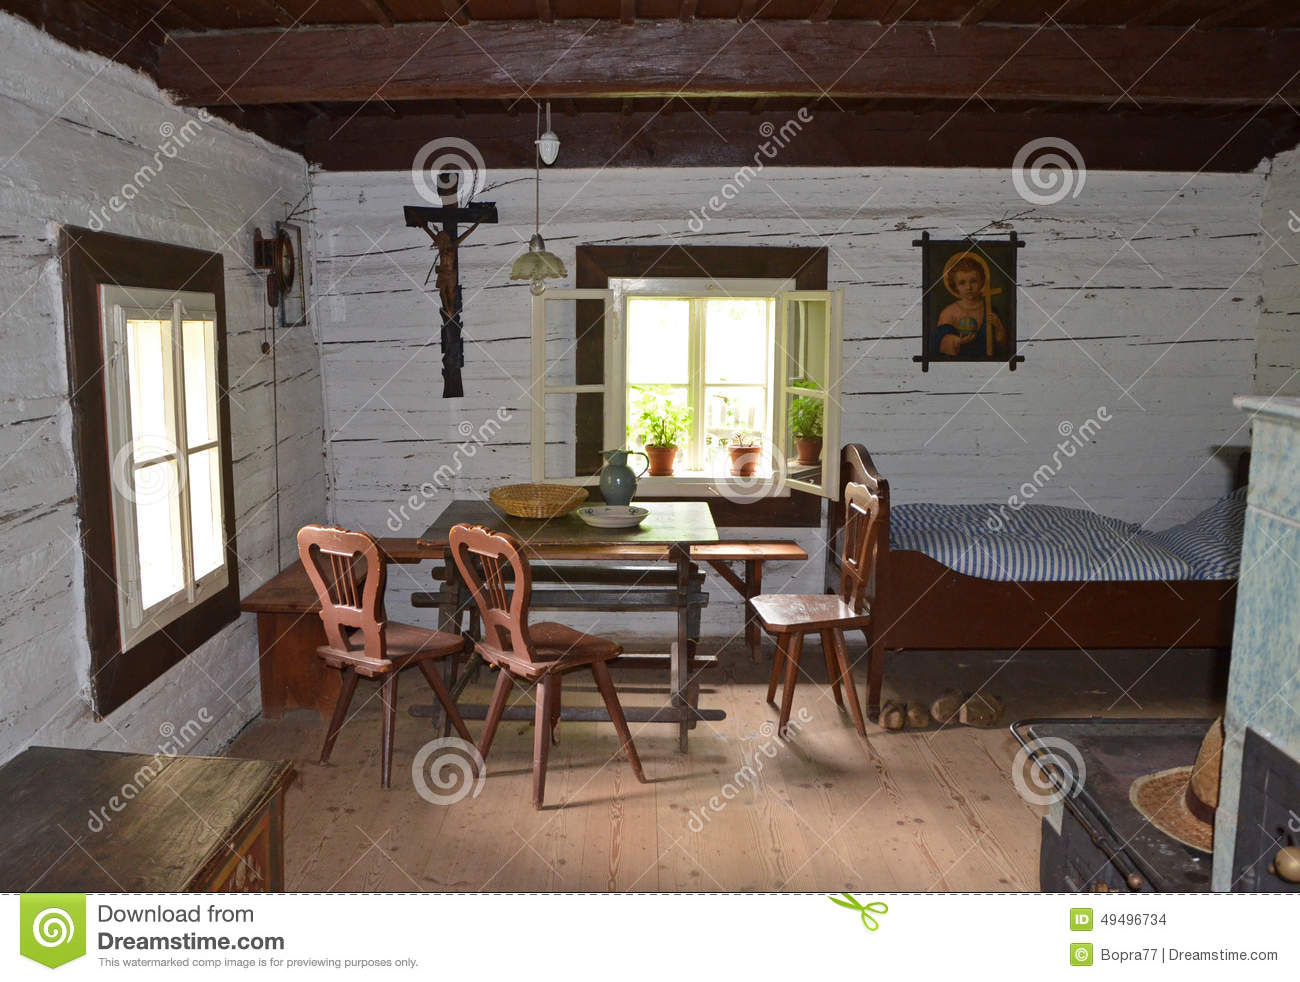 KOURIM MAY 24 Interior Of Traditional Village House